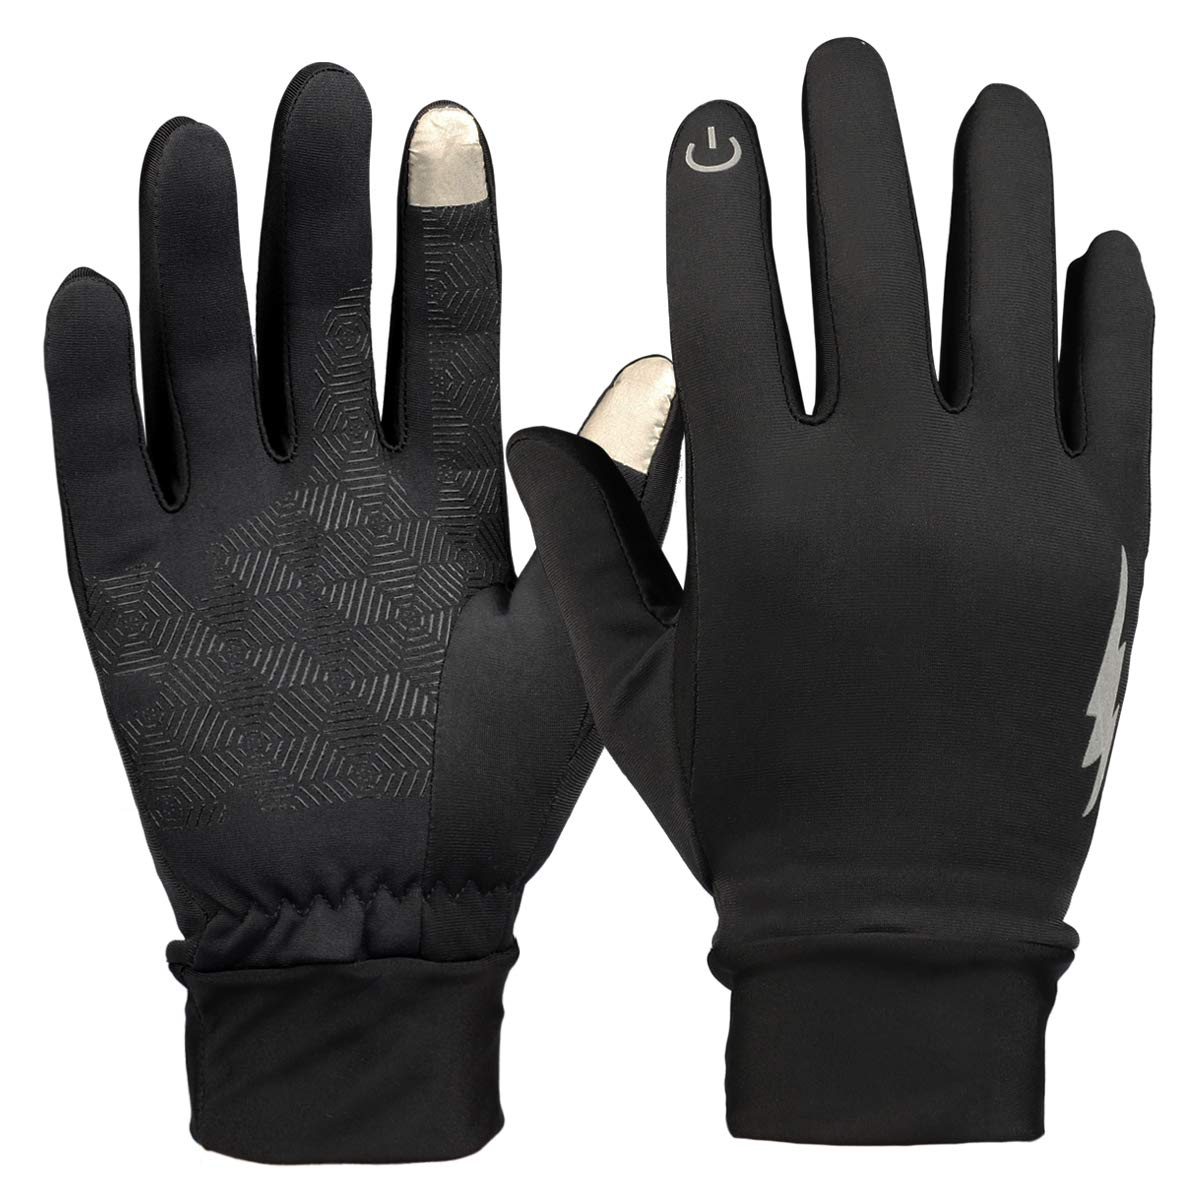 328a45ca2e8c8 Amazon.com : HiCool Winter Gloves, Men Women Touchscreen Gloves Running  Gloves Driving Cycling Gloves Outdoor Windproof Thermal Gloves (Black) :  Sports & ...